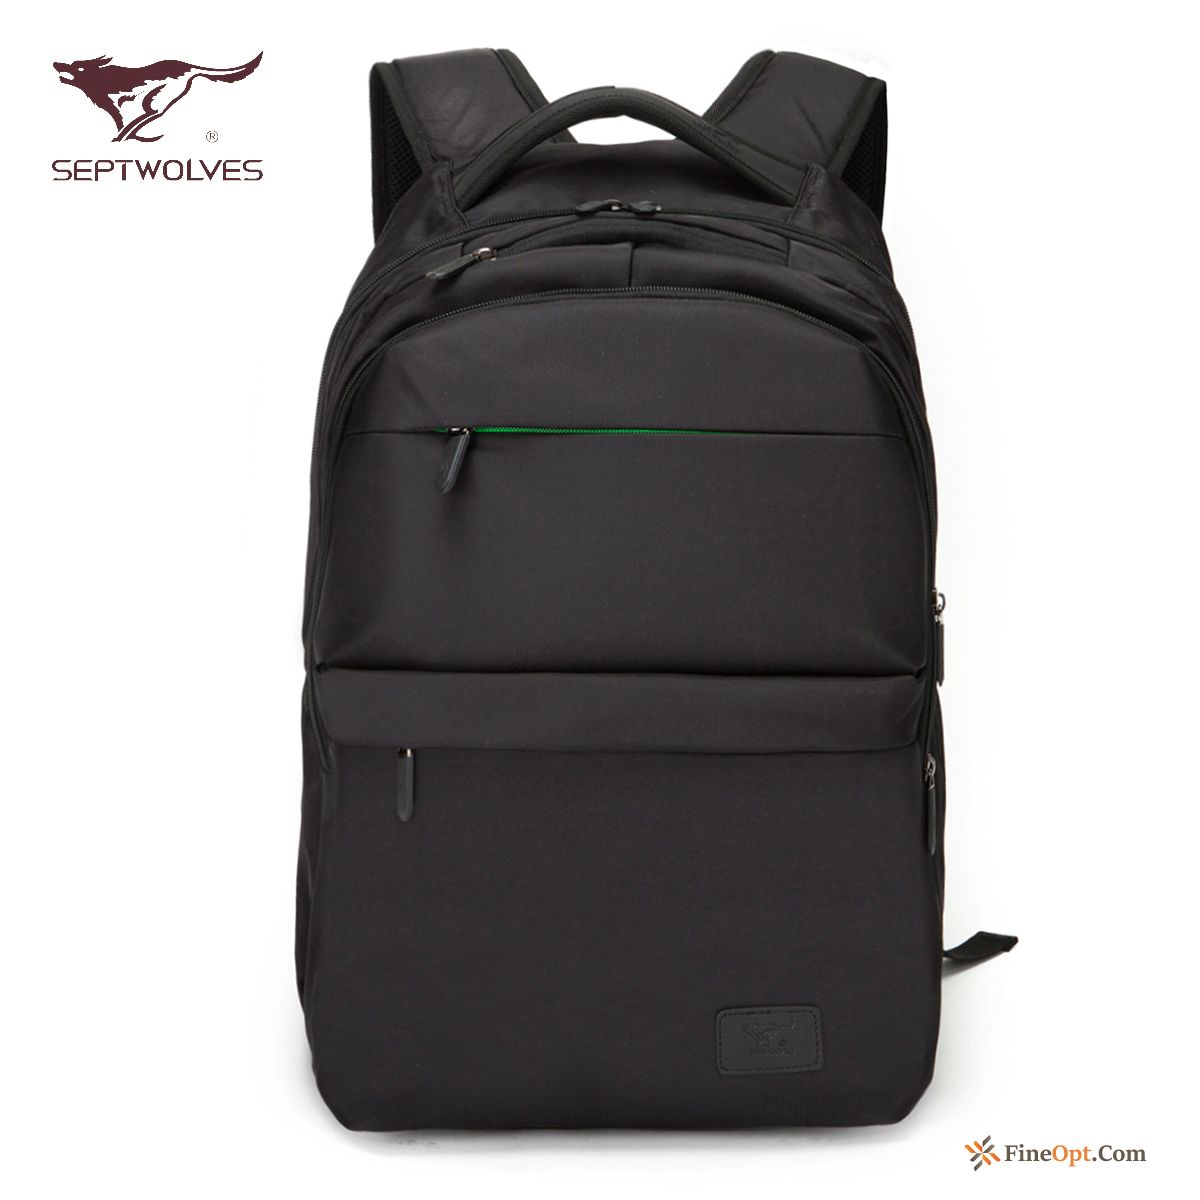 Student Backpack Travel Bag School Bag Men's Waterproof Business Backpack